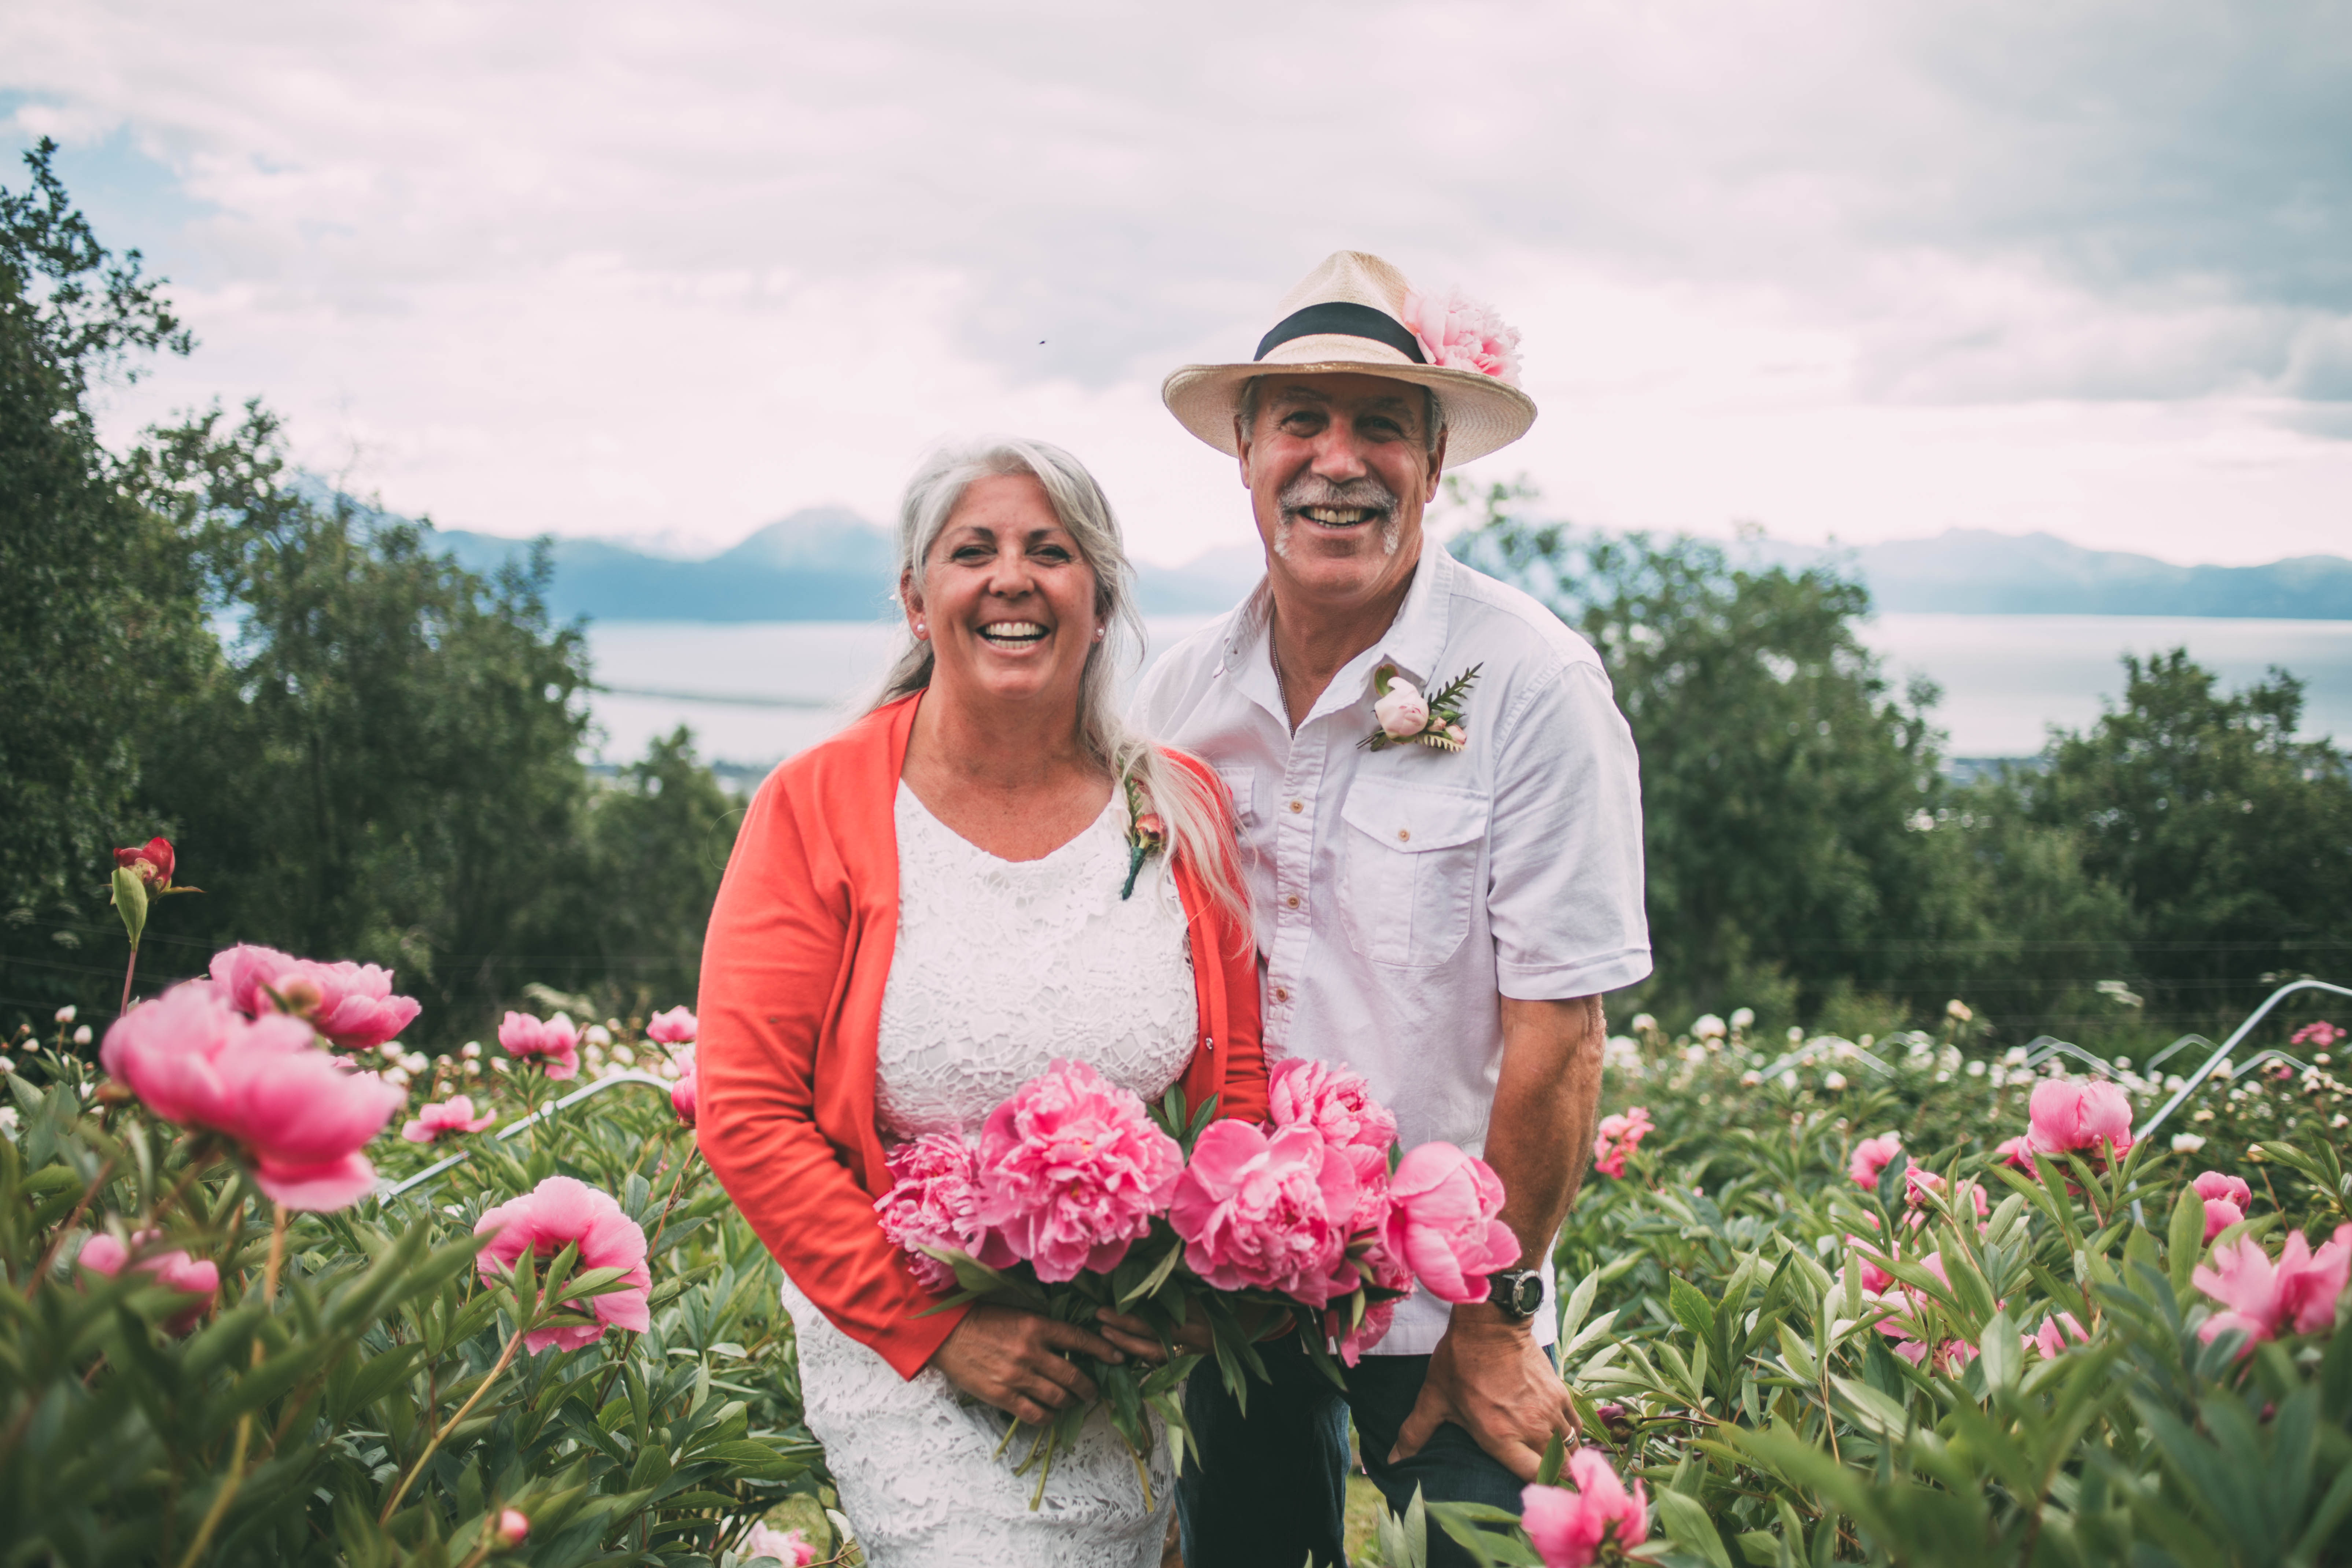 A couple holding peonies posing in peony field overlooking ocean and mountains.